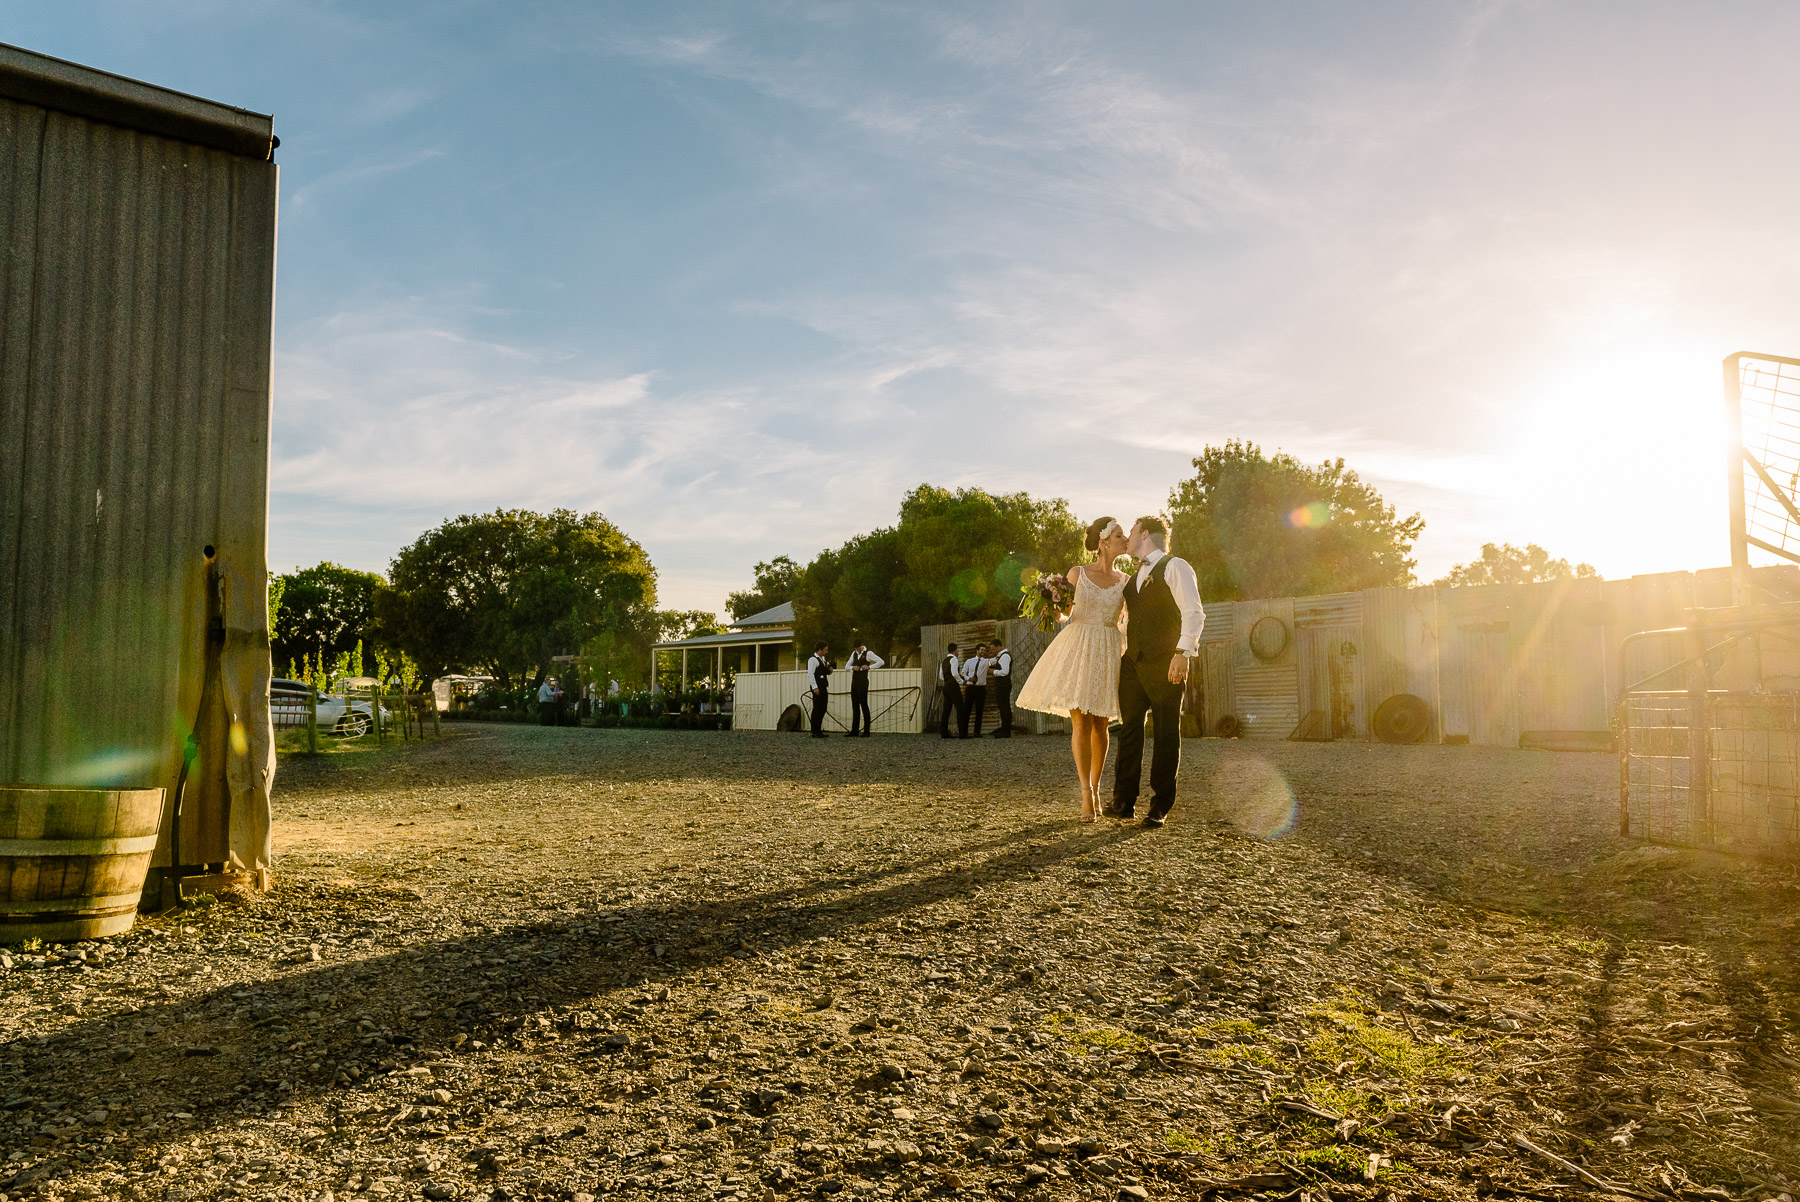 Justin_and_Jim_Best_Of_Wedding_Photography-24.jpg